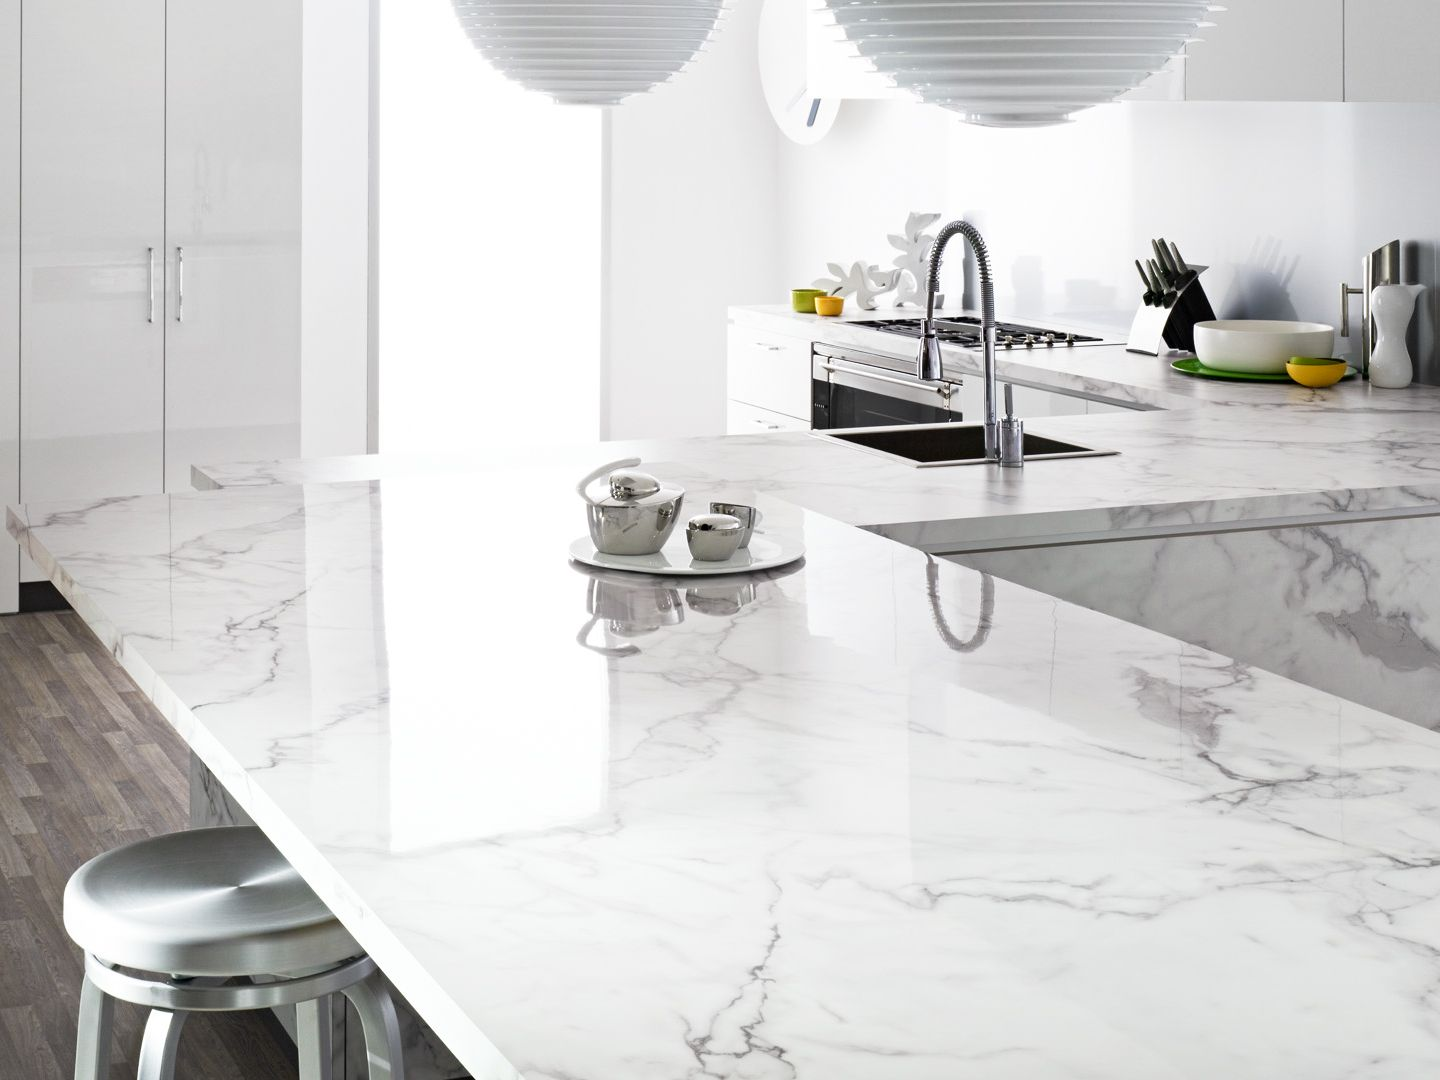 carrara countertops tile bathroom marble countertop cabinetry mimic master porcelain features pin white with shaker floors durable the this style traditional